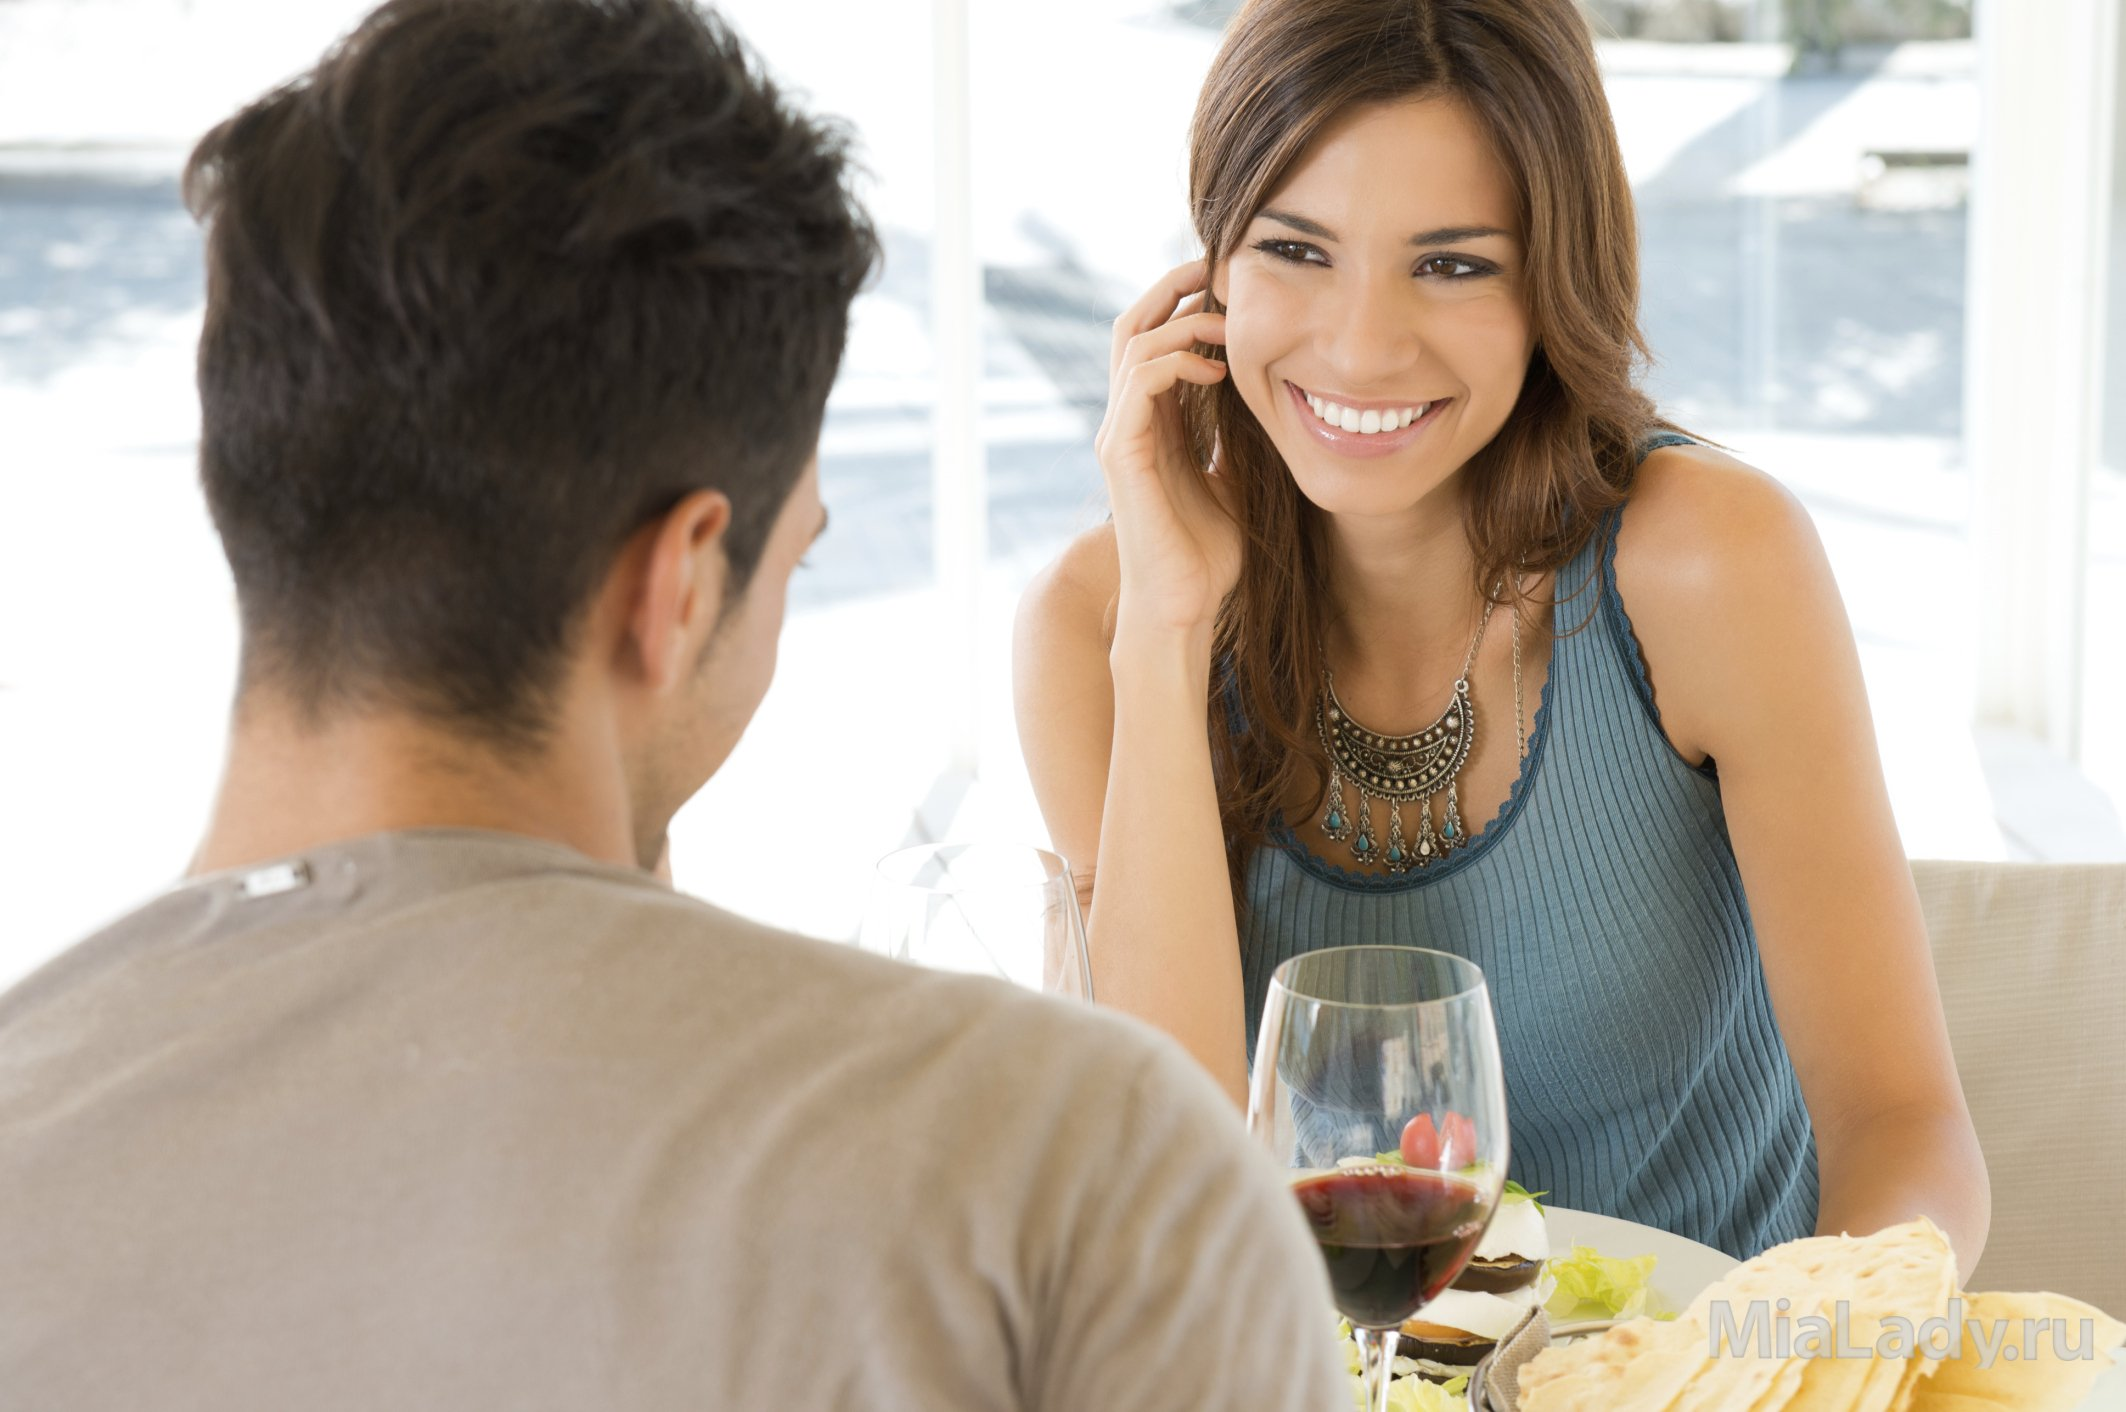 First online dating tips